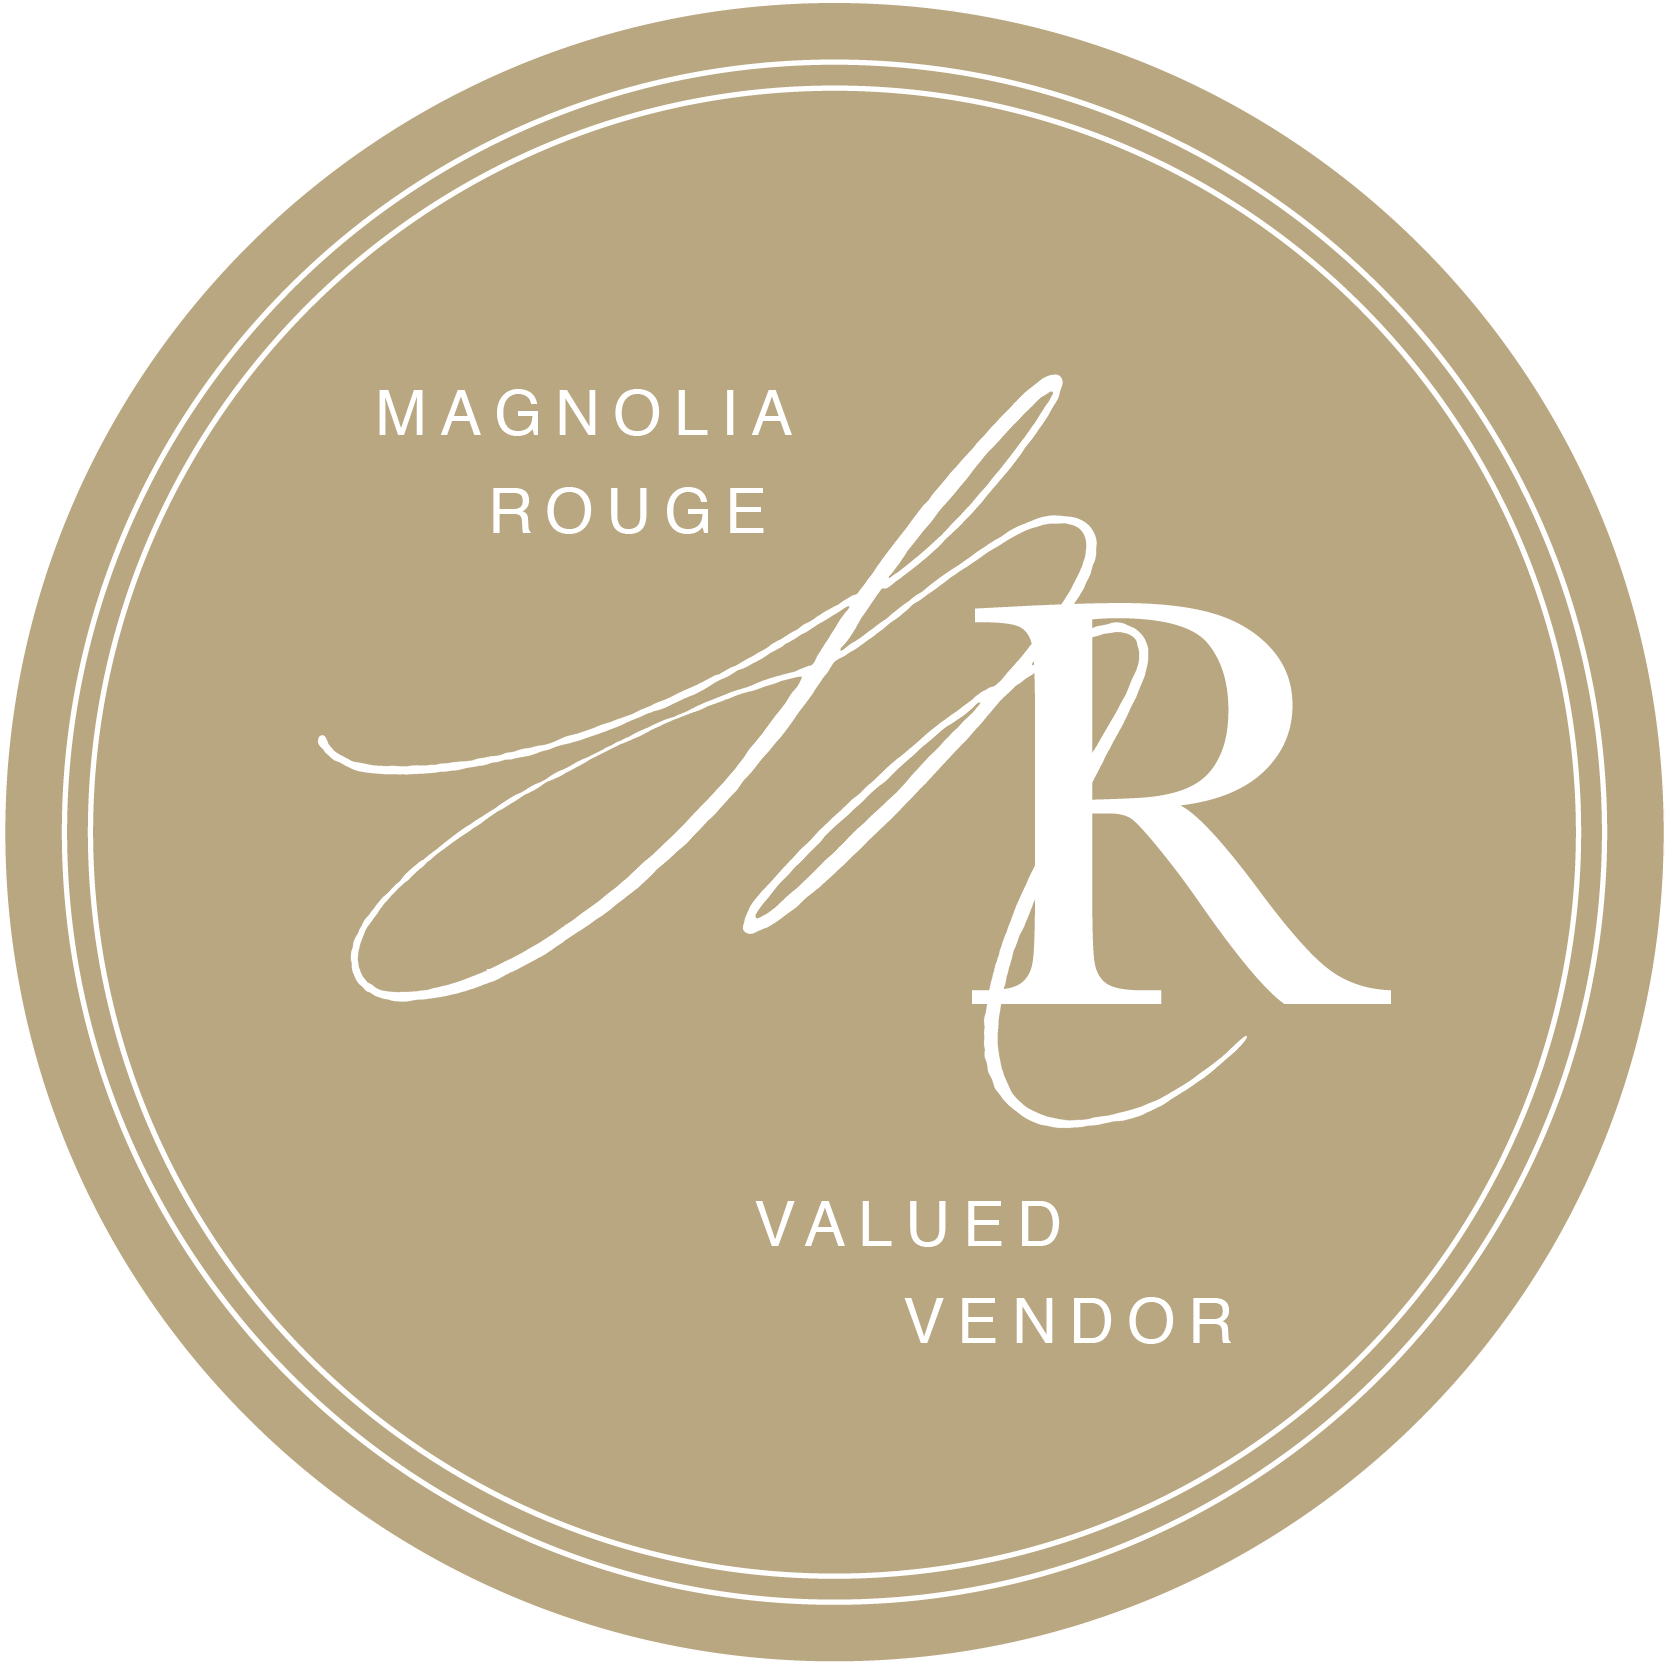 Magnolia Rouge Approved Vendor